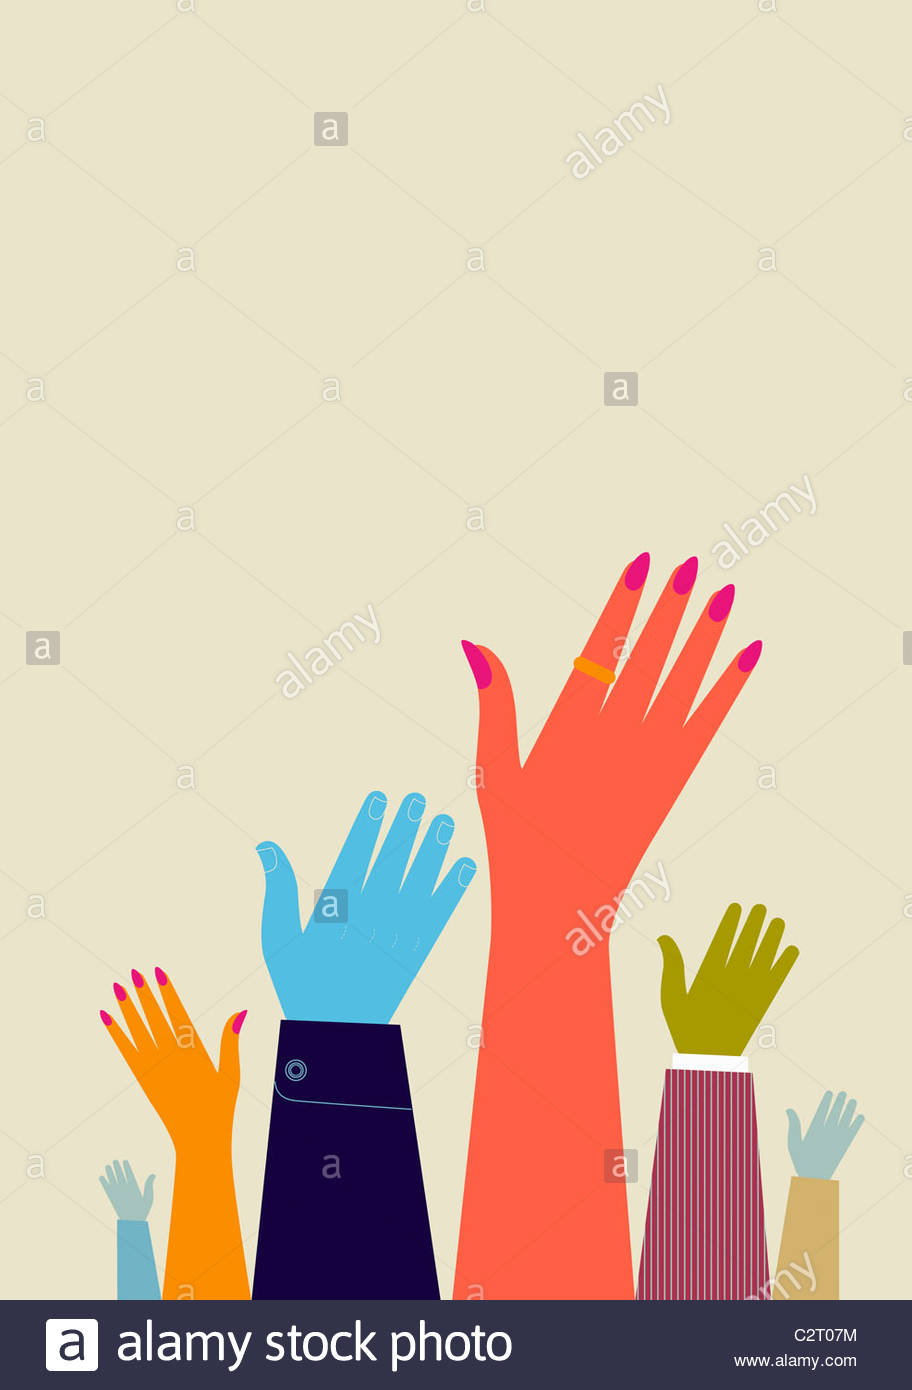 People raising their hands - Stock Image